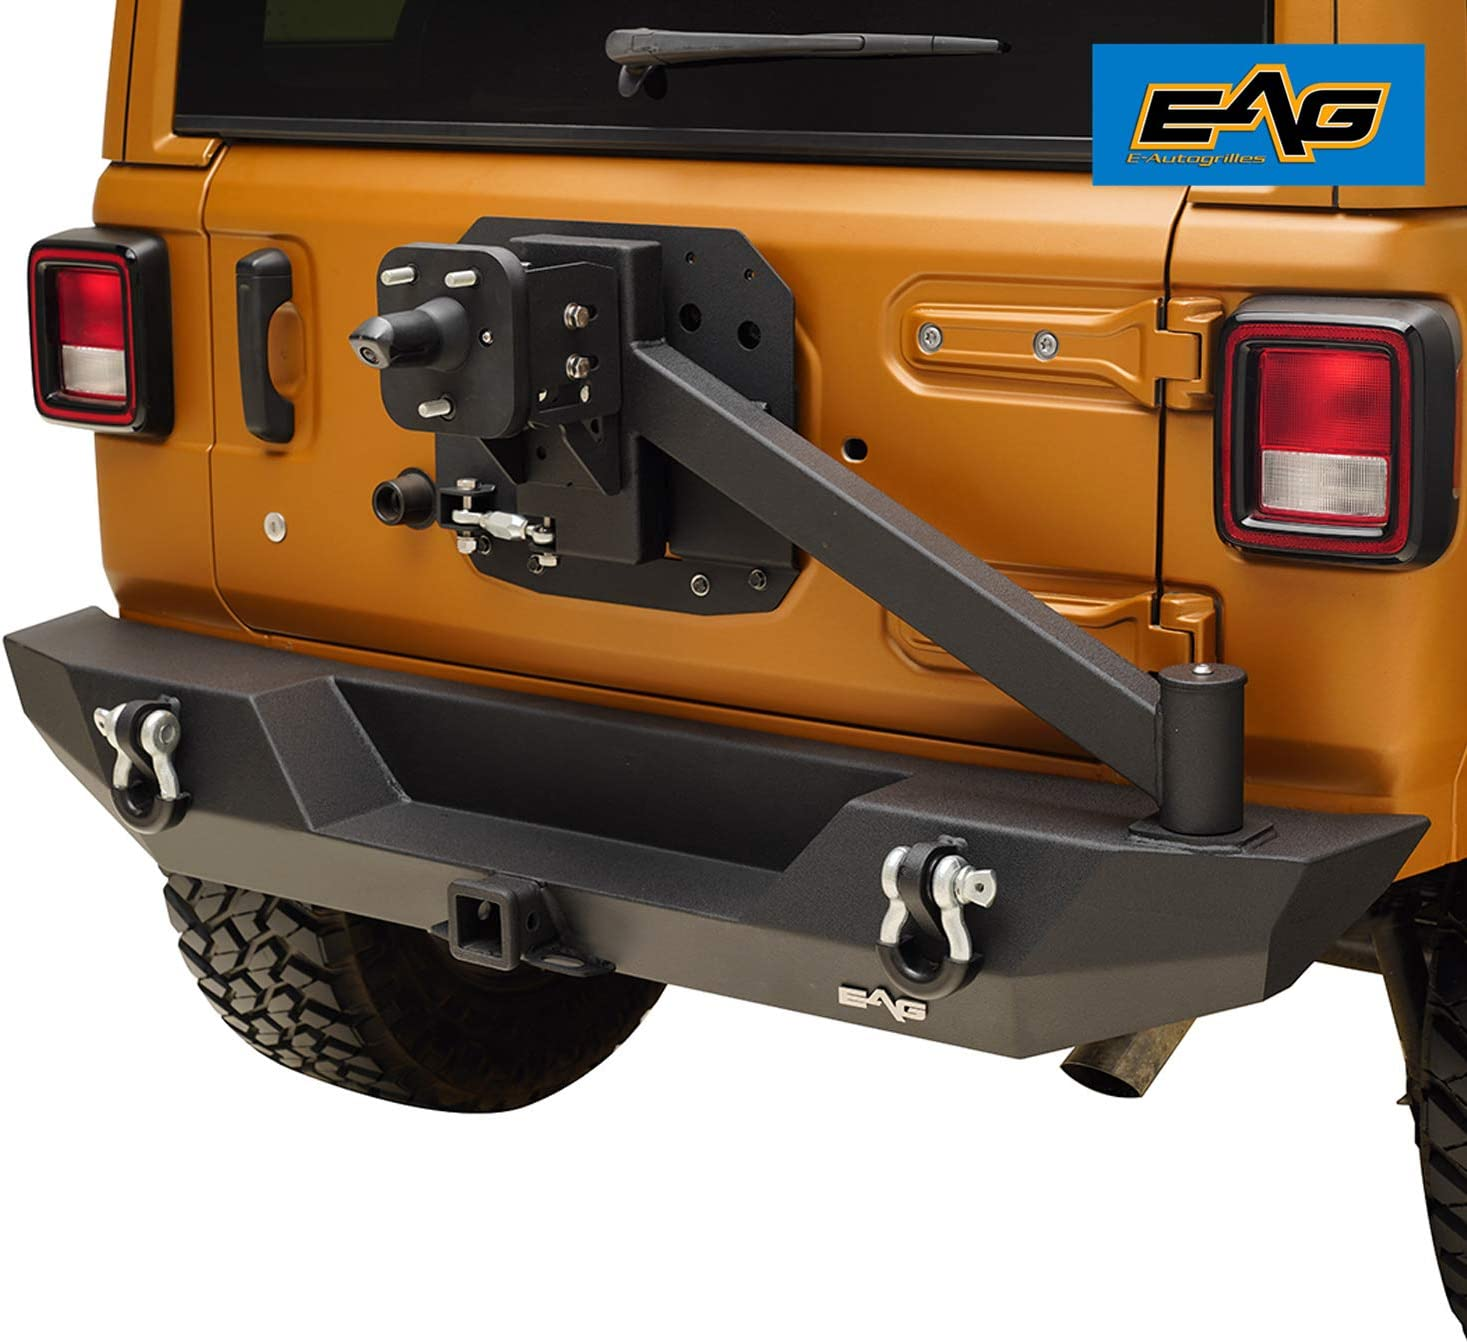 EAG Rear Bumper with Tire Carrier Fit for New life 18-21 Adapter and Super sale